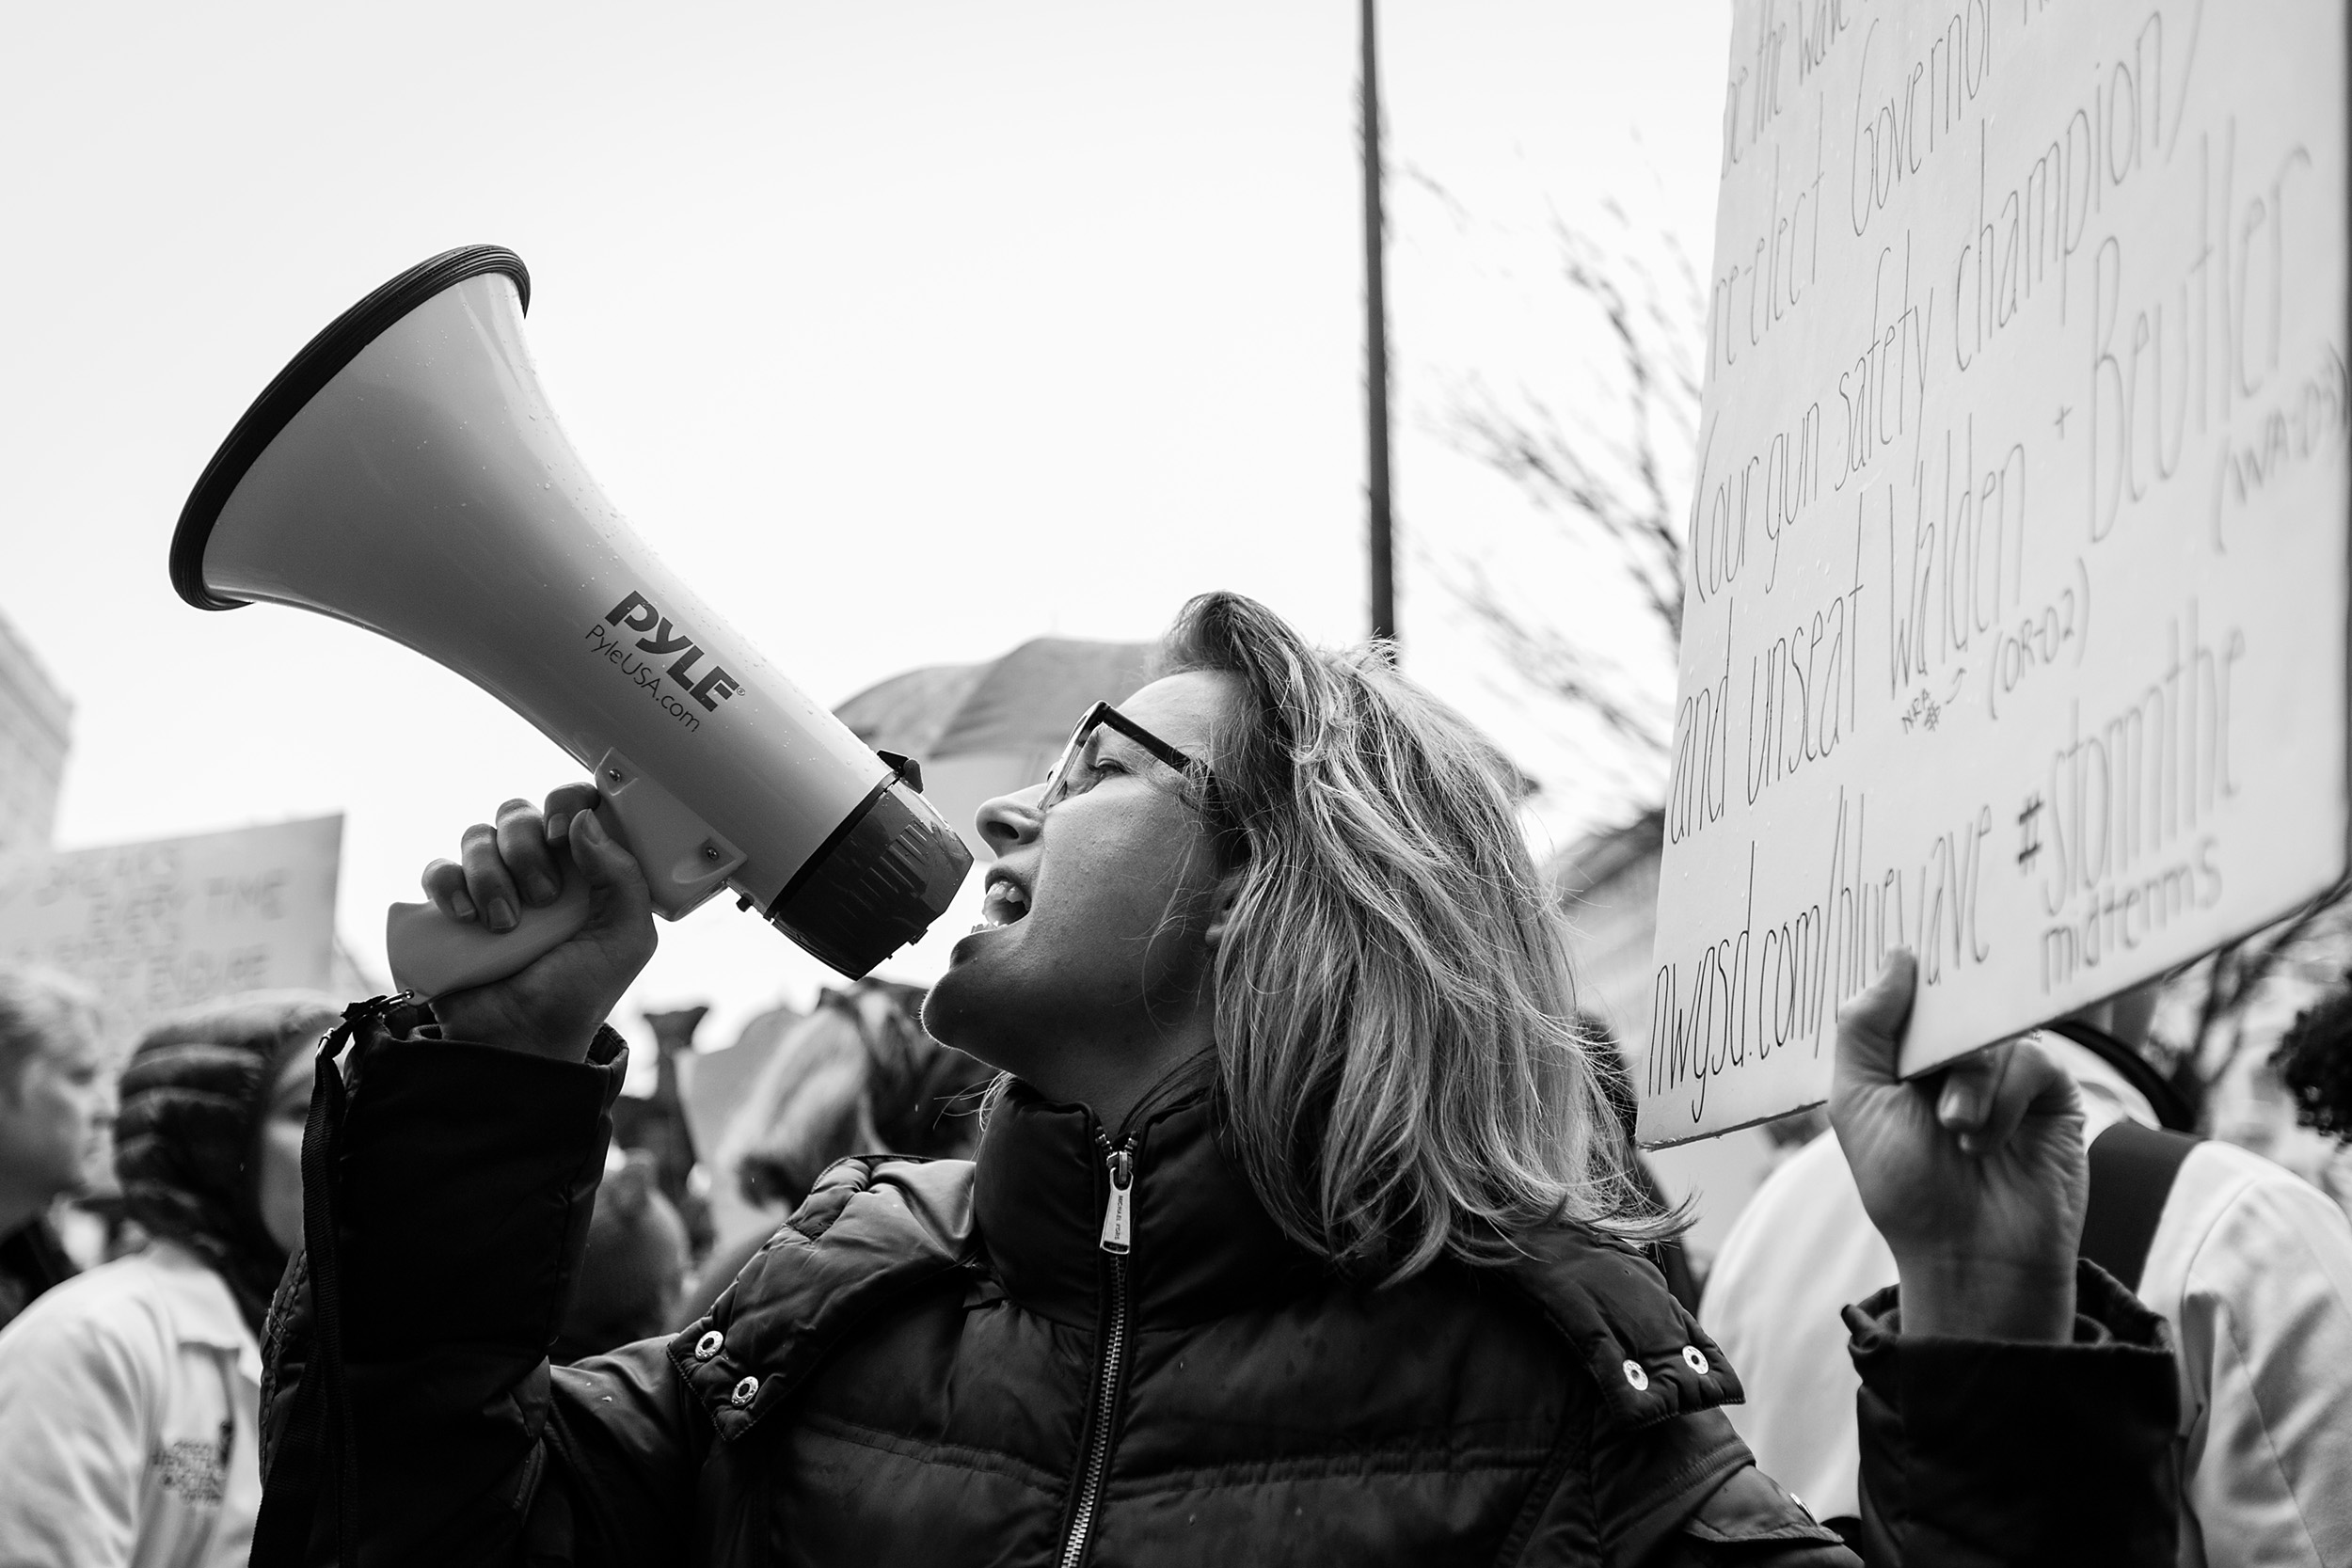 woman with loudspeaker leads crowd in chant